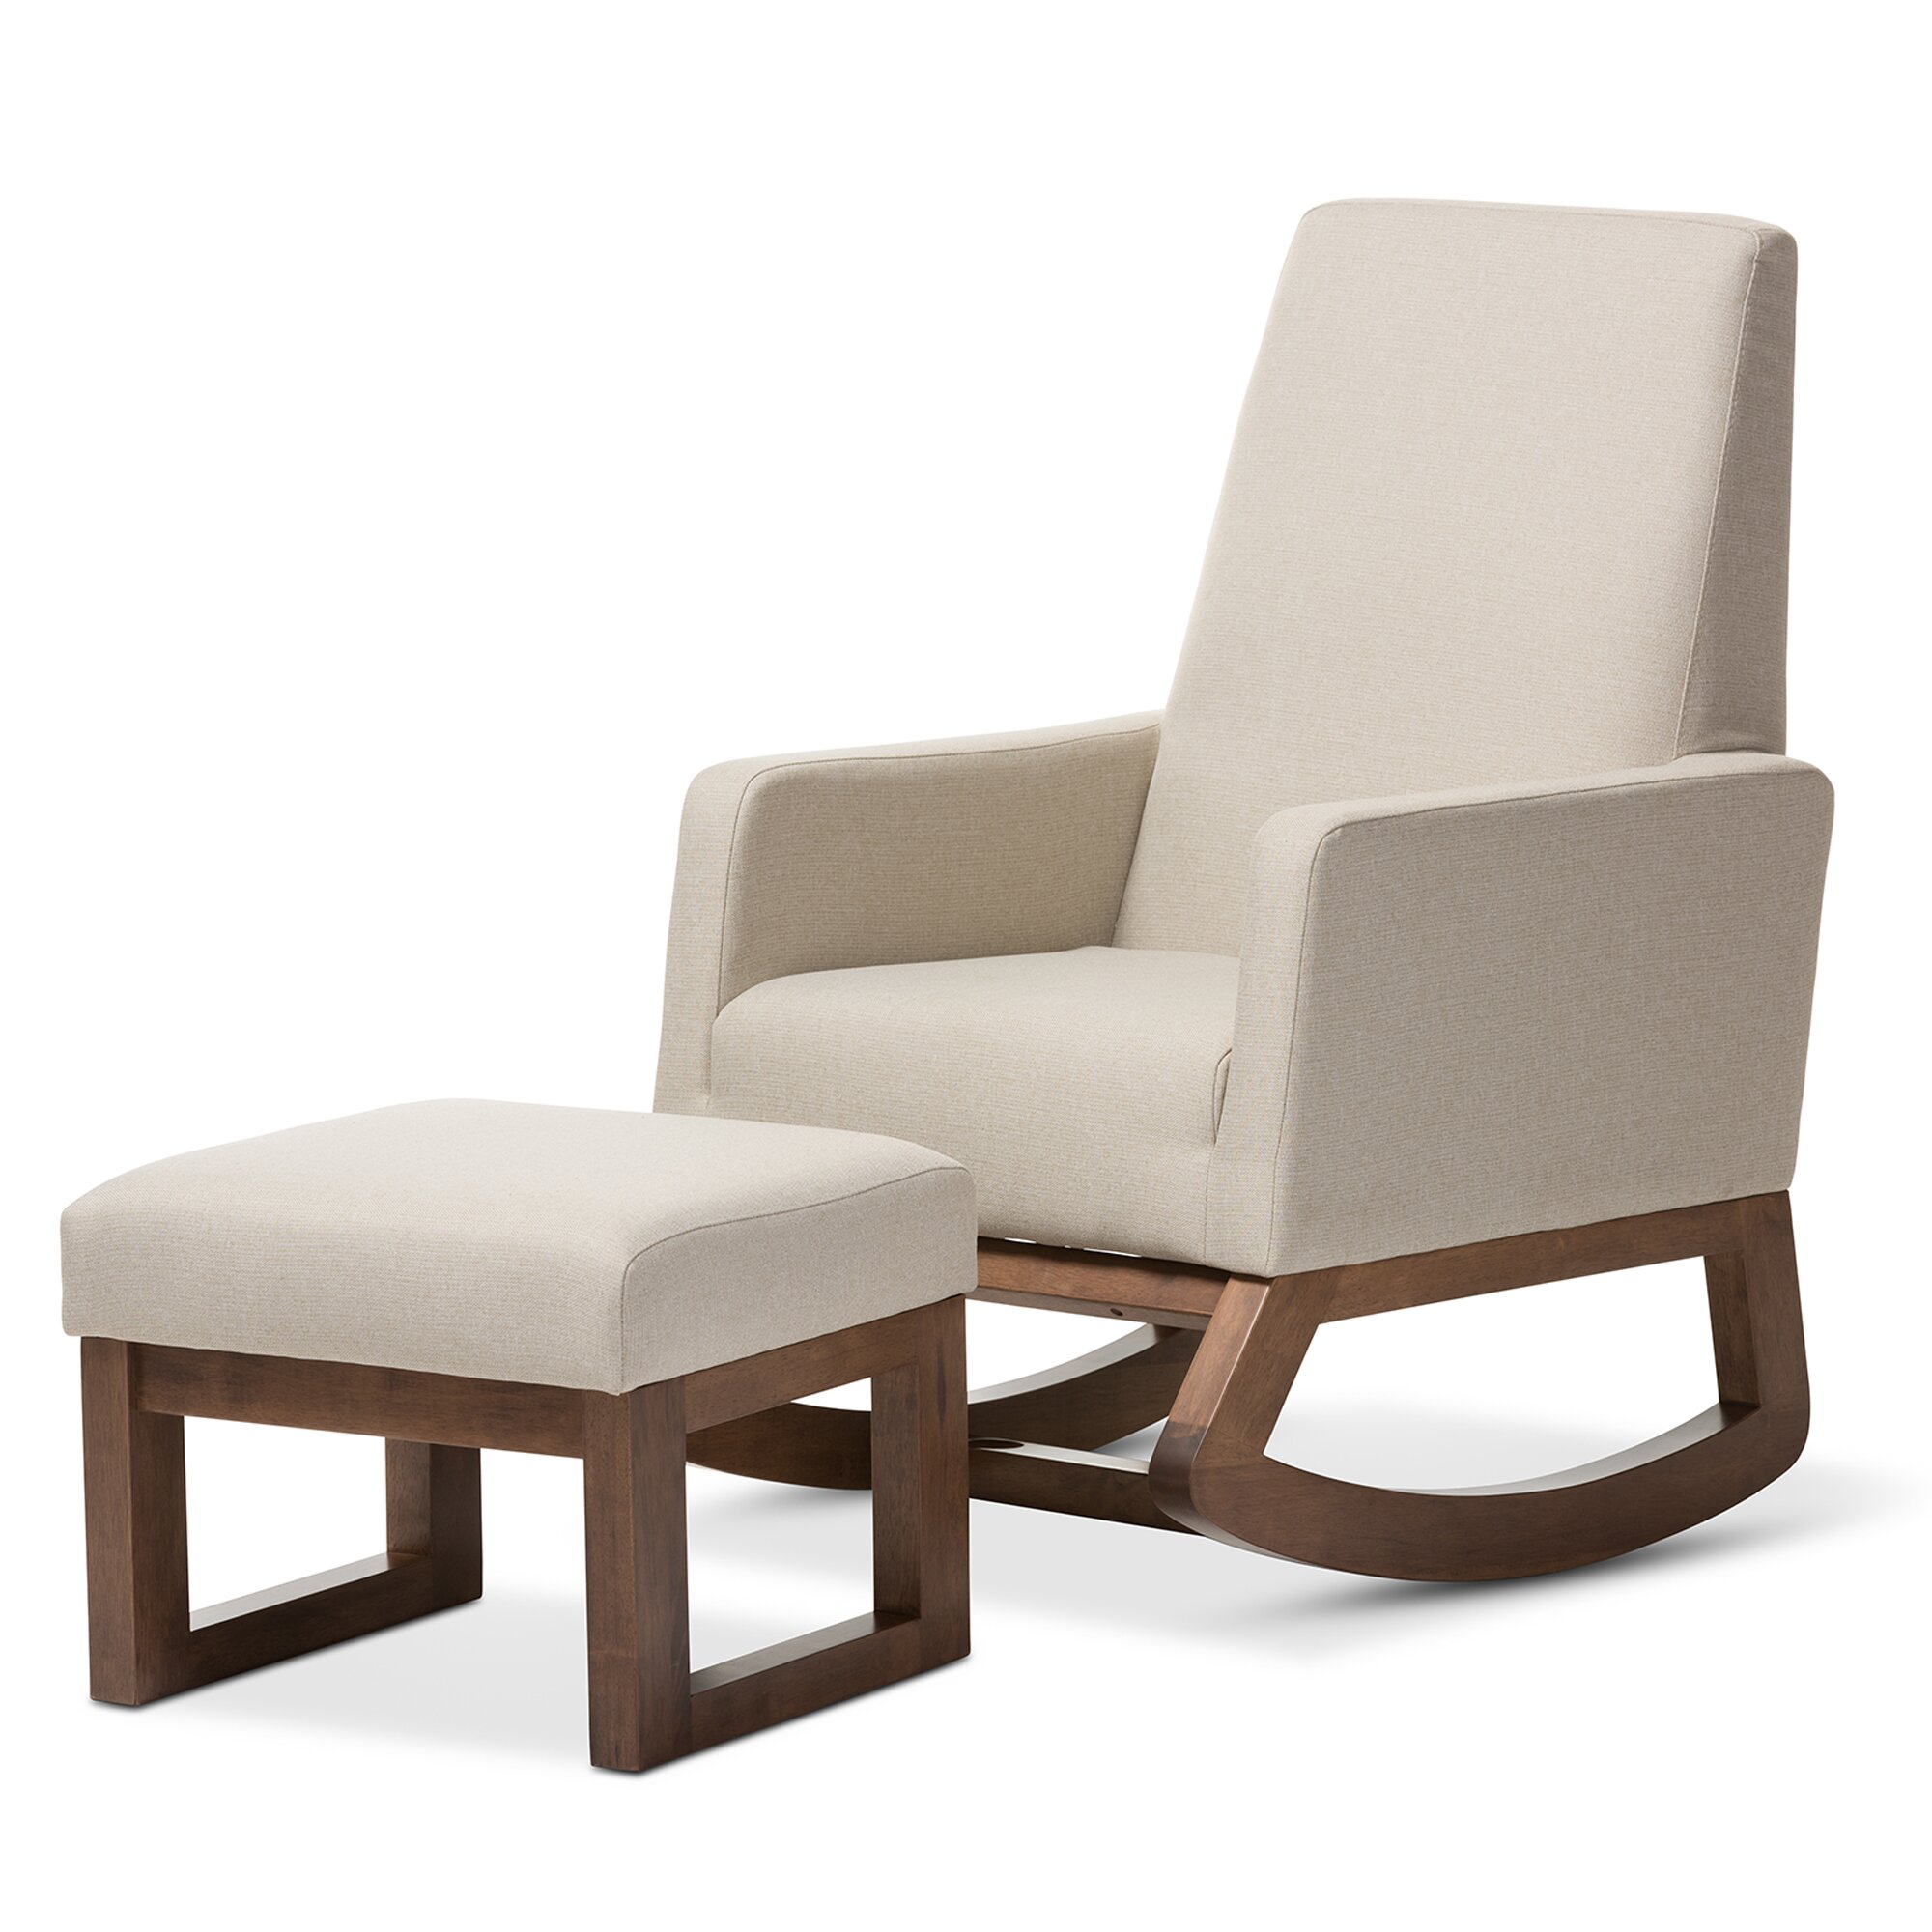 Wholesale Interiors Baxton Studio Rocking Chair & Reviews  Wayfair